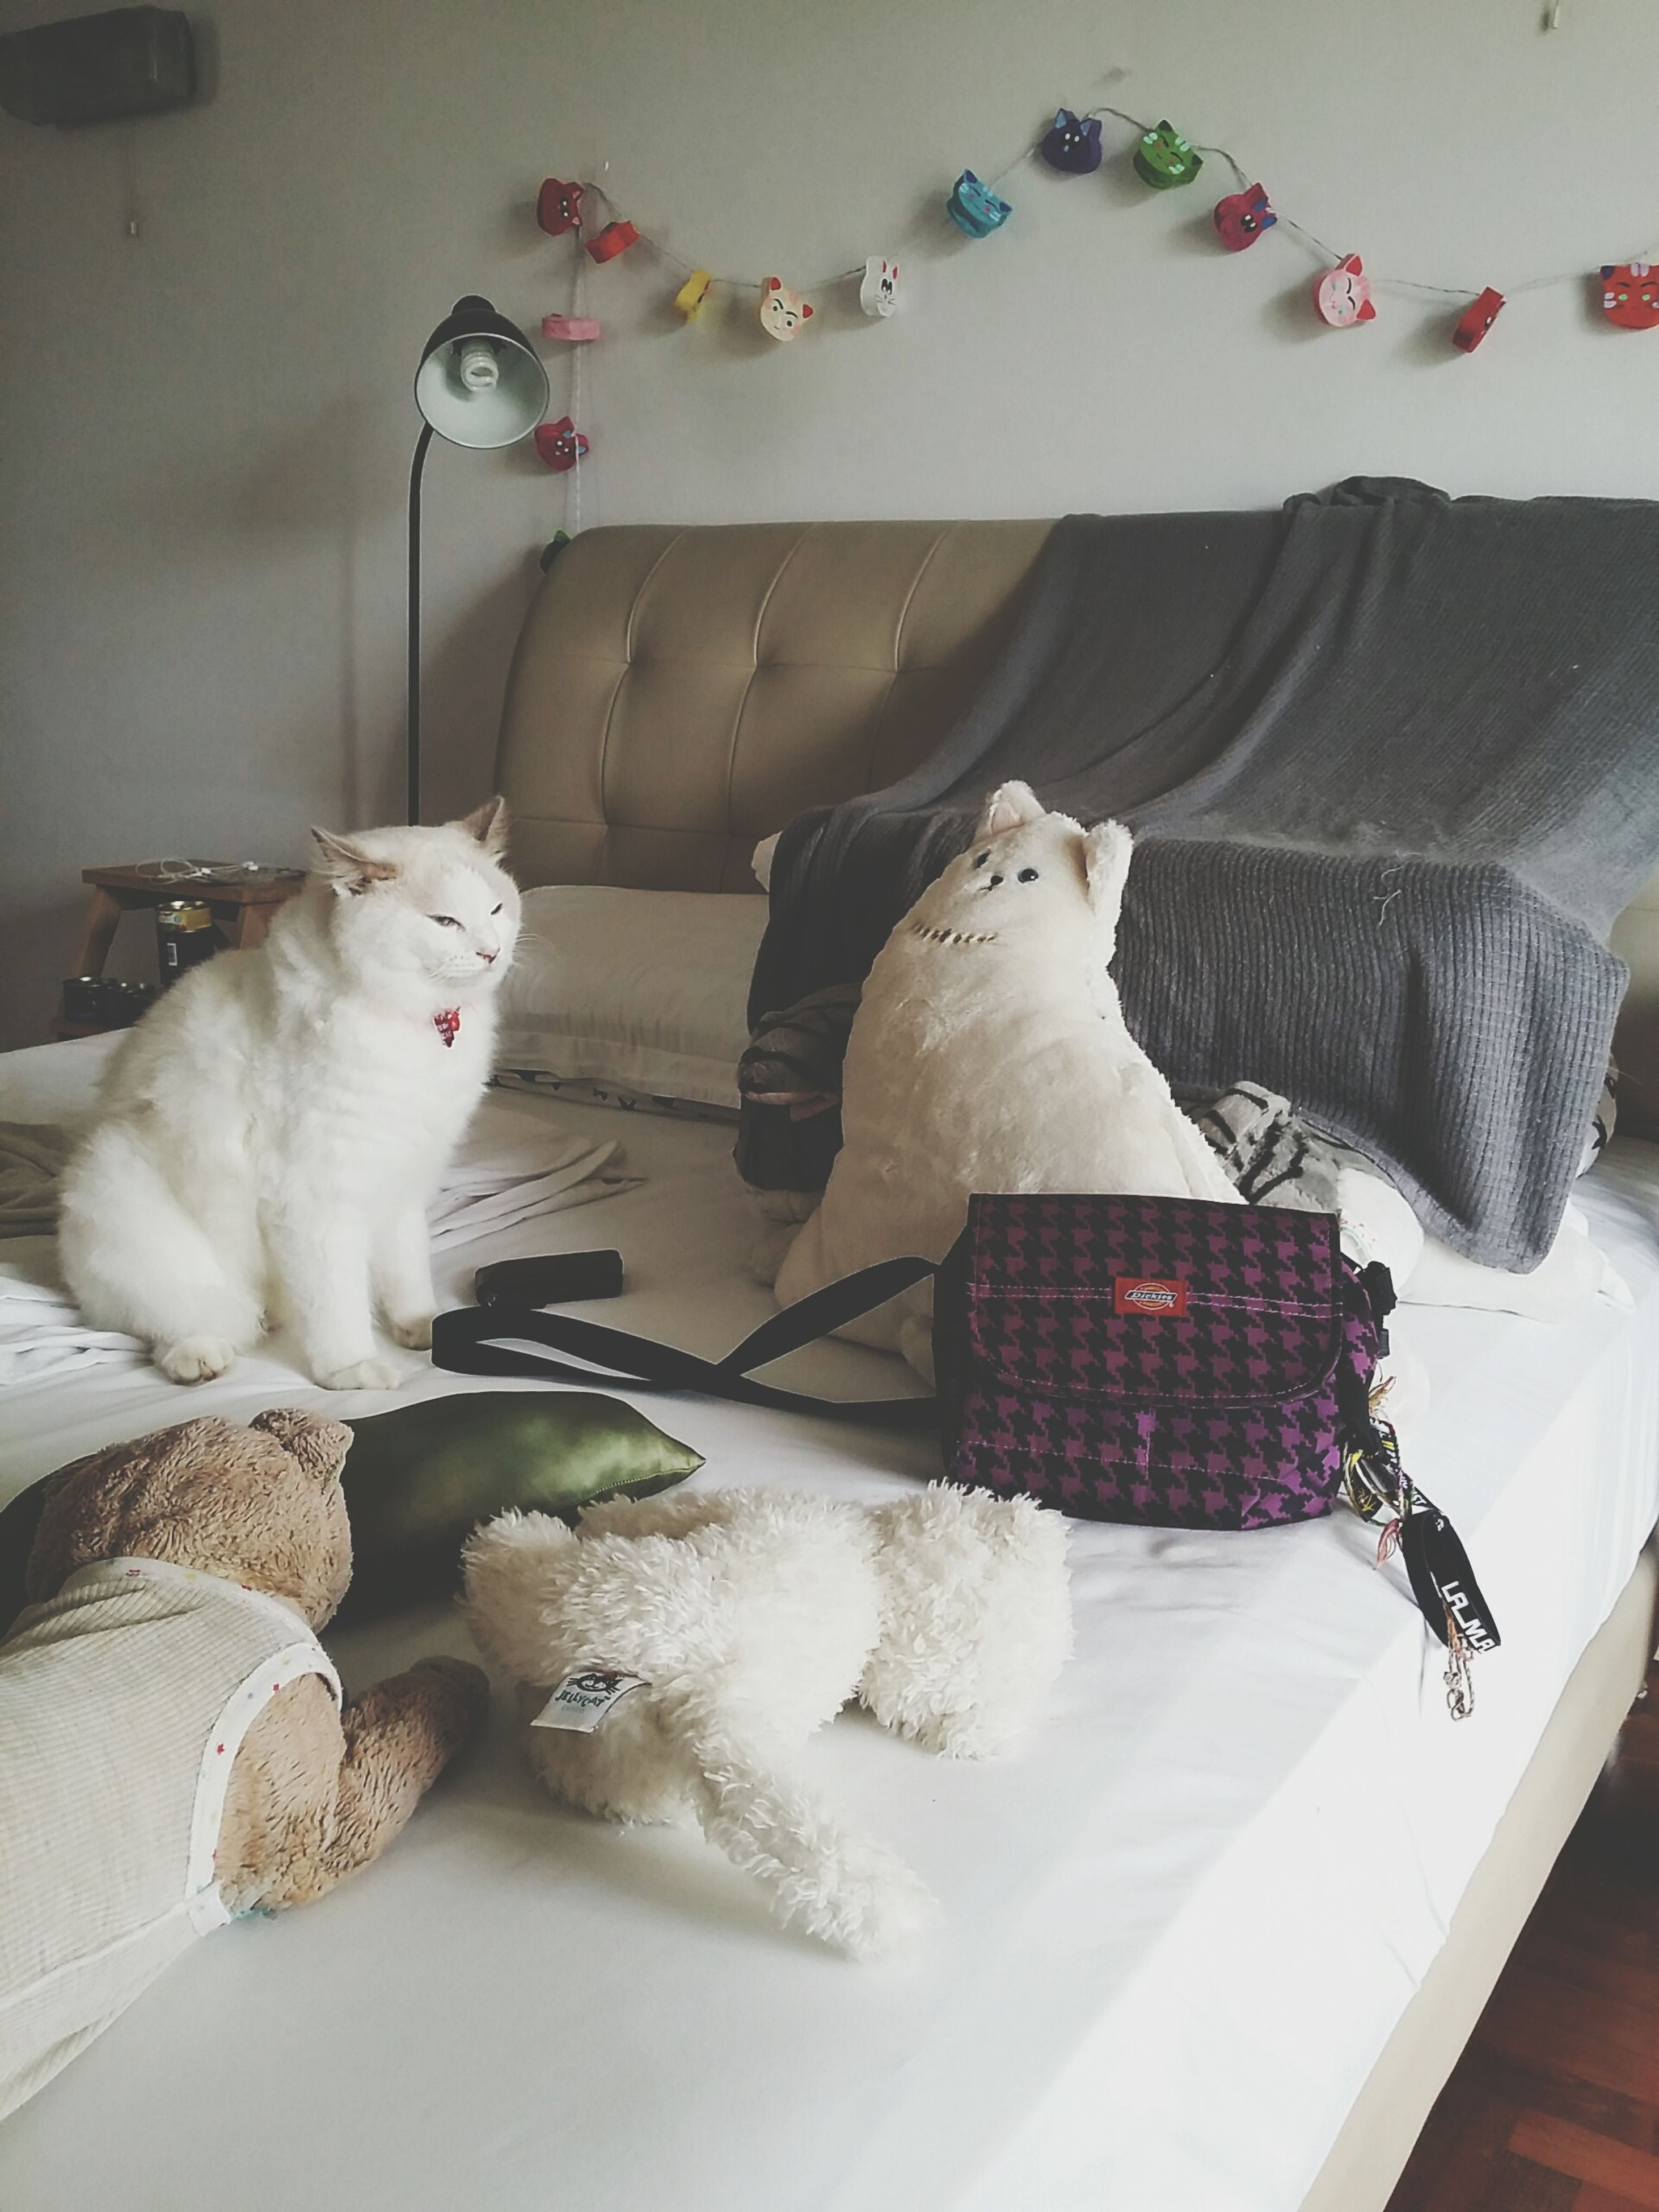 indoors, domestic animals, pets, food, animal themes, mammal, food and drink, relaxation, domestic cat, high angle view, cat, sitting, table, home interior, one animal, full length, resting, toy